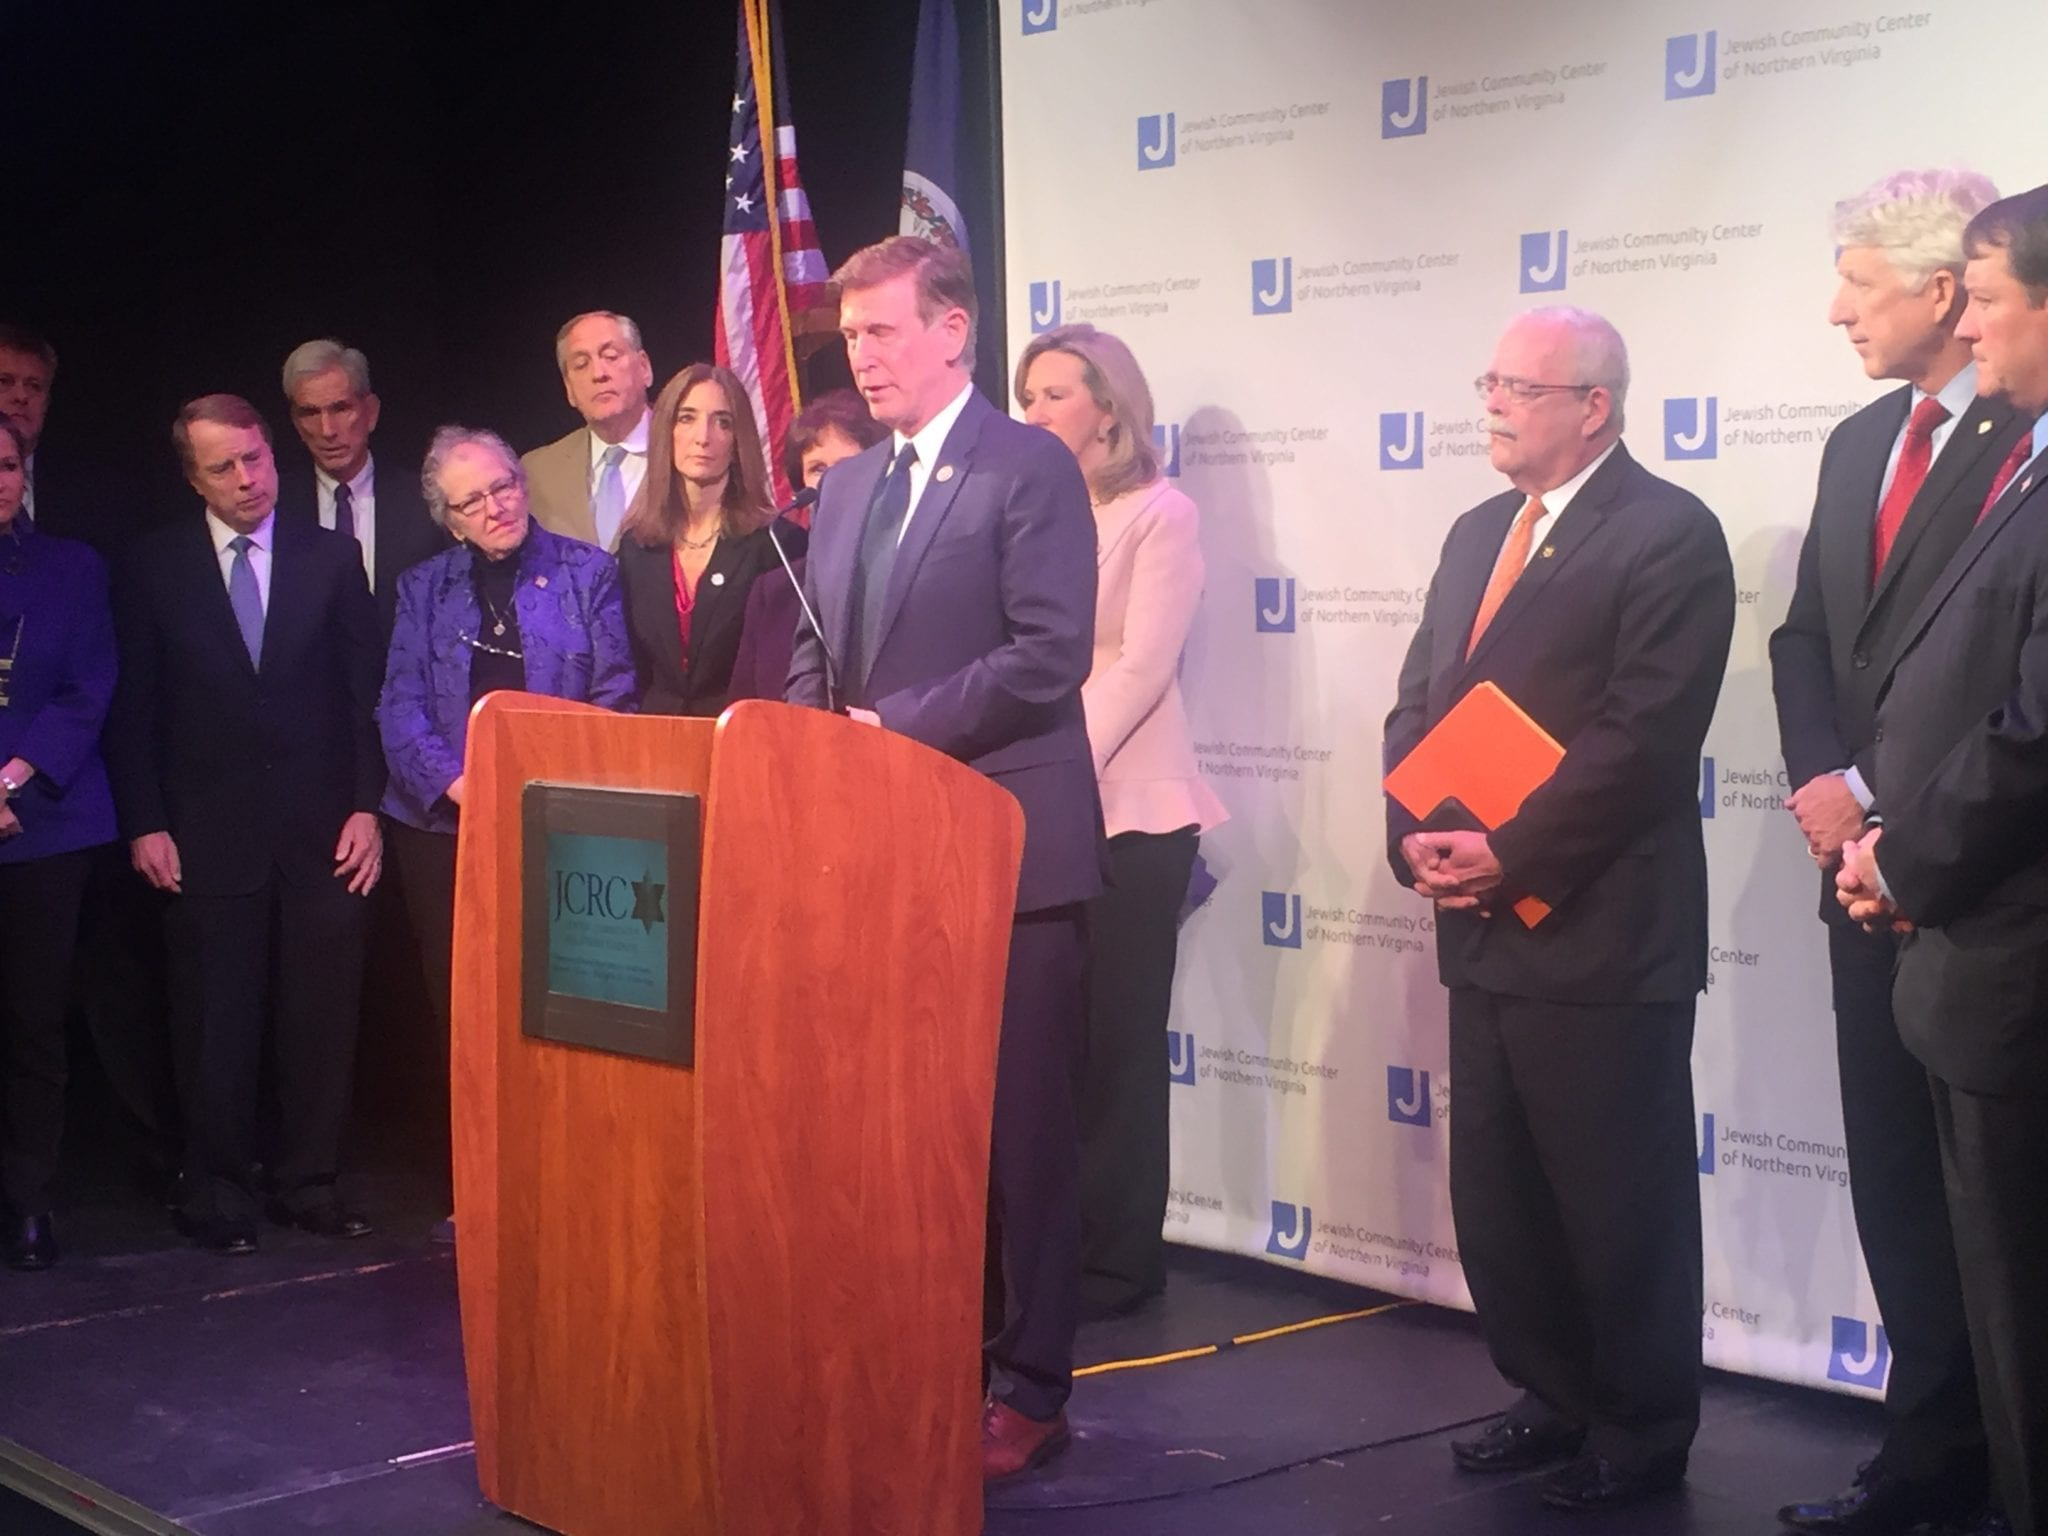 U.S. Rep. Donald Beyer Jr. speaks at a news conference to denounce anti-semitism at the Jewish Community Center of Northern Virginia in Fairfax on Friday. (Photo: News-Press)